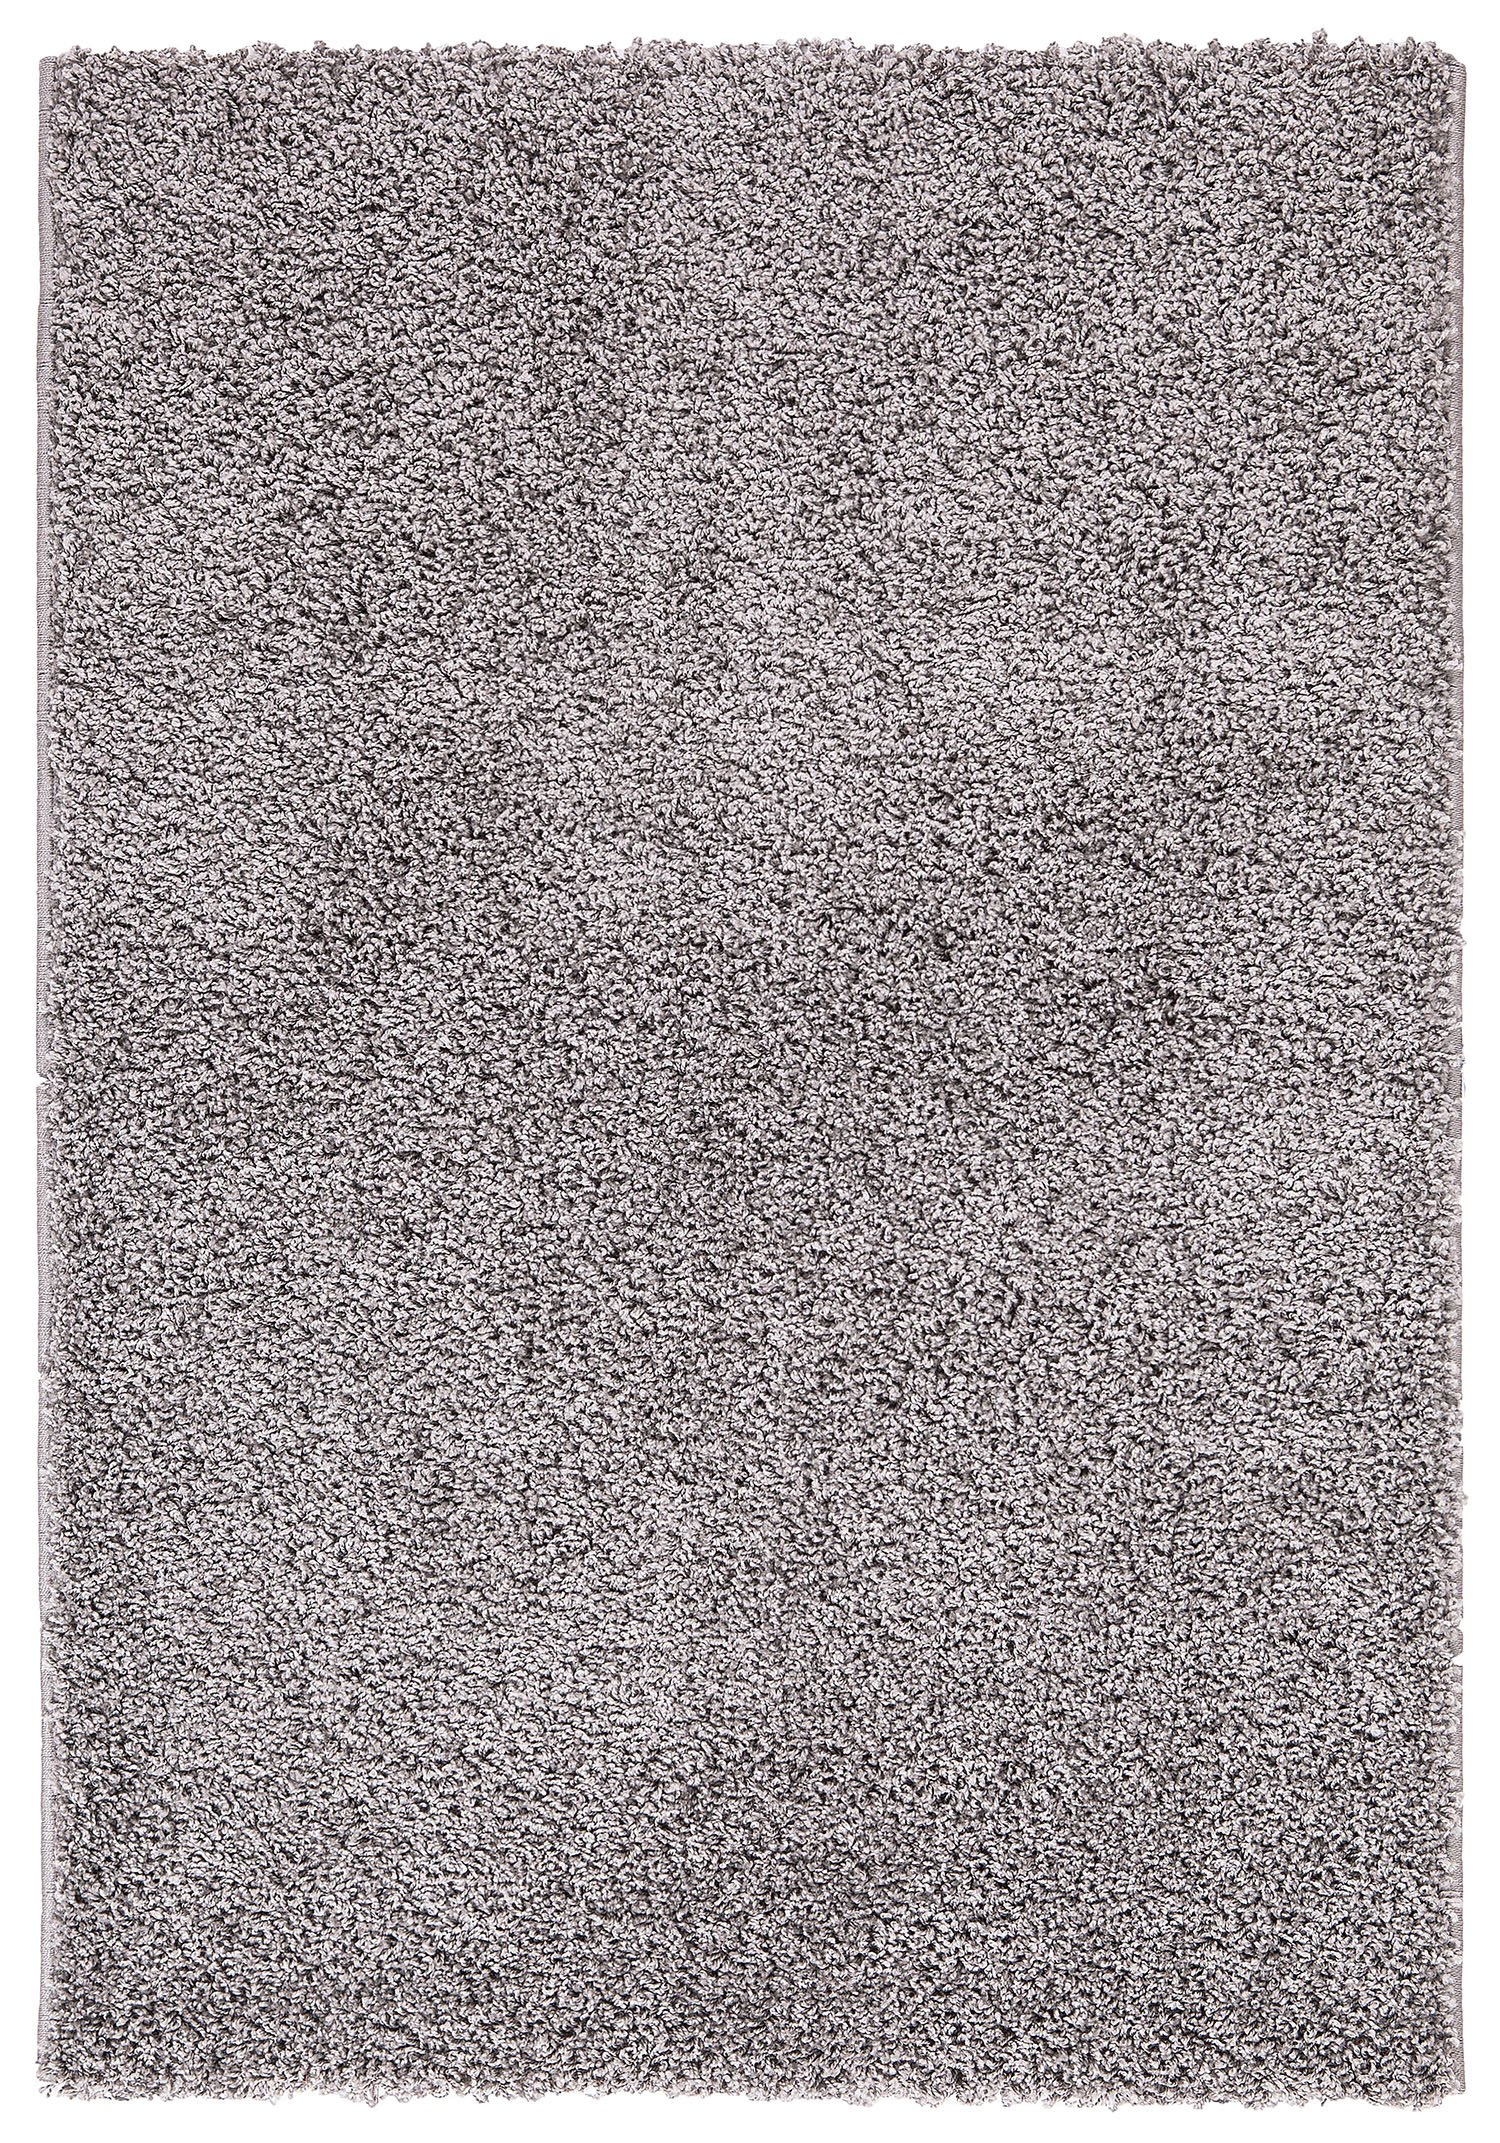 Ottomanson Soft Cozy Color Solid Shag Area Rug Contemporary Living and Bedroom Soft Shag Area Rug, Grey, 7'10'' L x 9'10'' W by Ottomanson (Image #3)